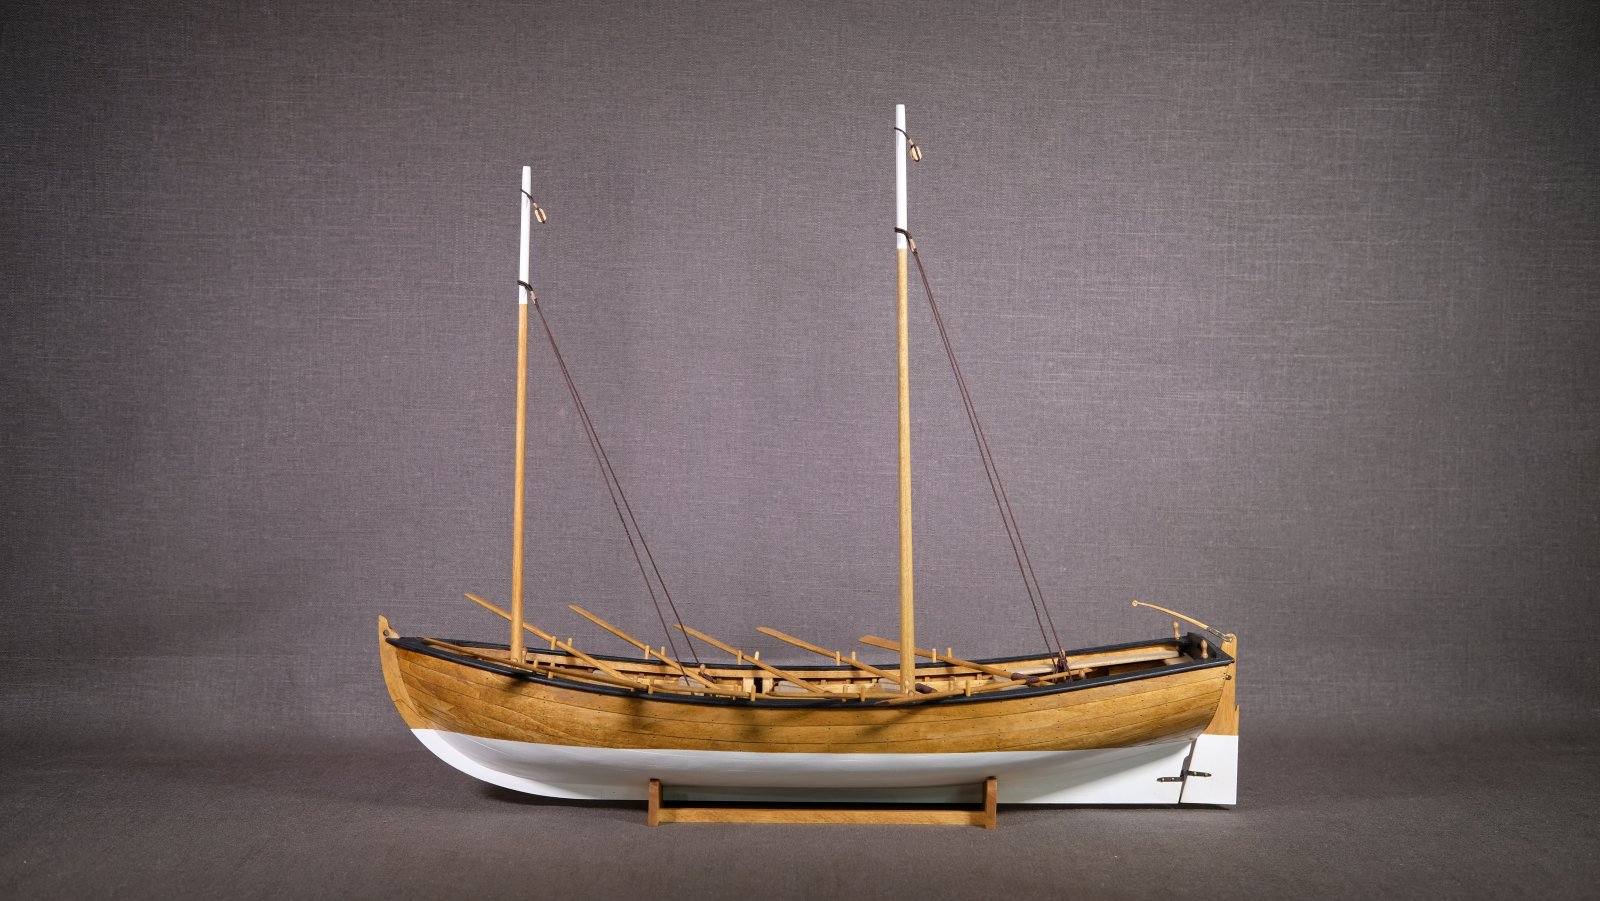 HMS Bounty Launch by Justin P. - Model Shipways - 1:16